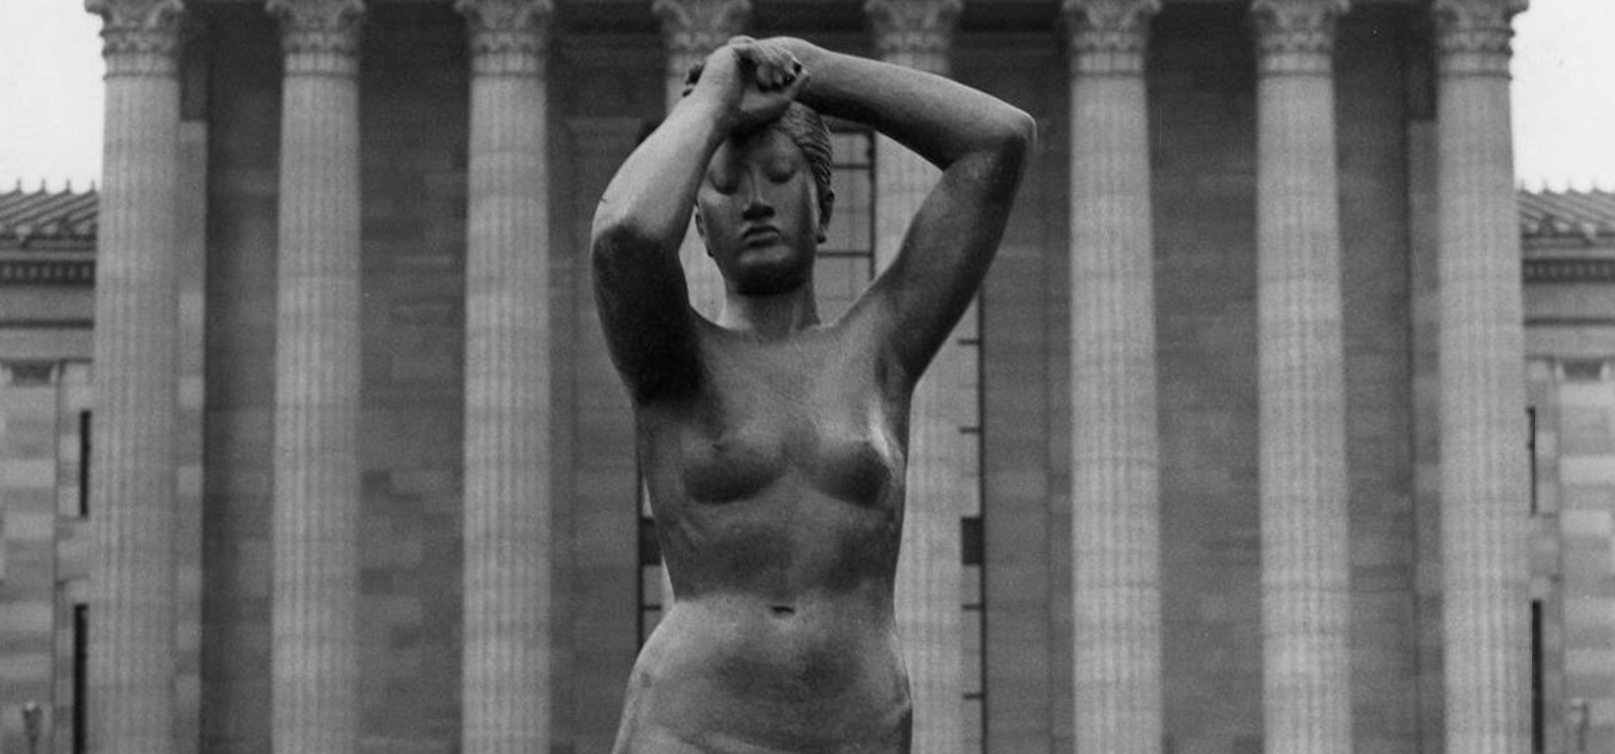 Historic black and white photo of Maja nude female sculpture in front of the Philadelphia Museum of Art in 1949 - banner image